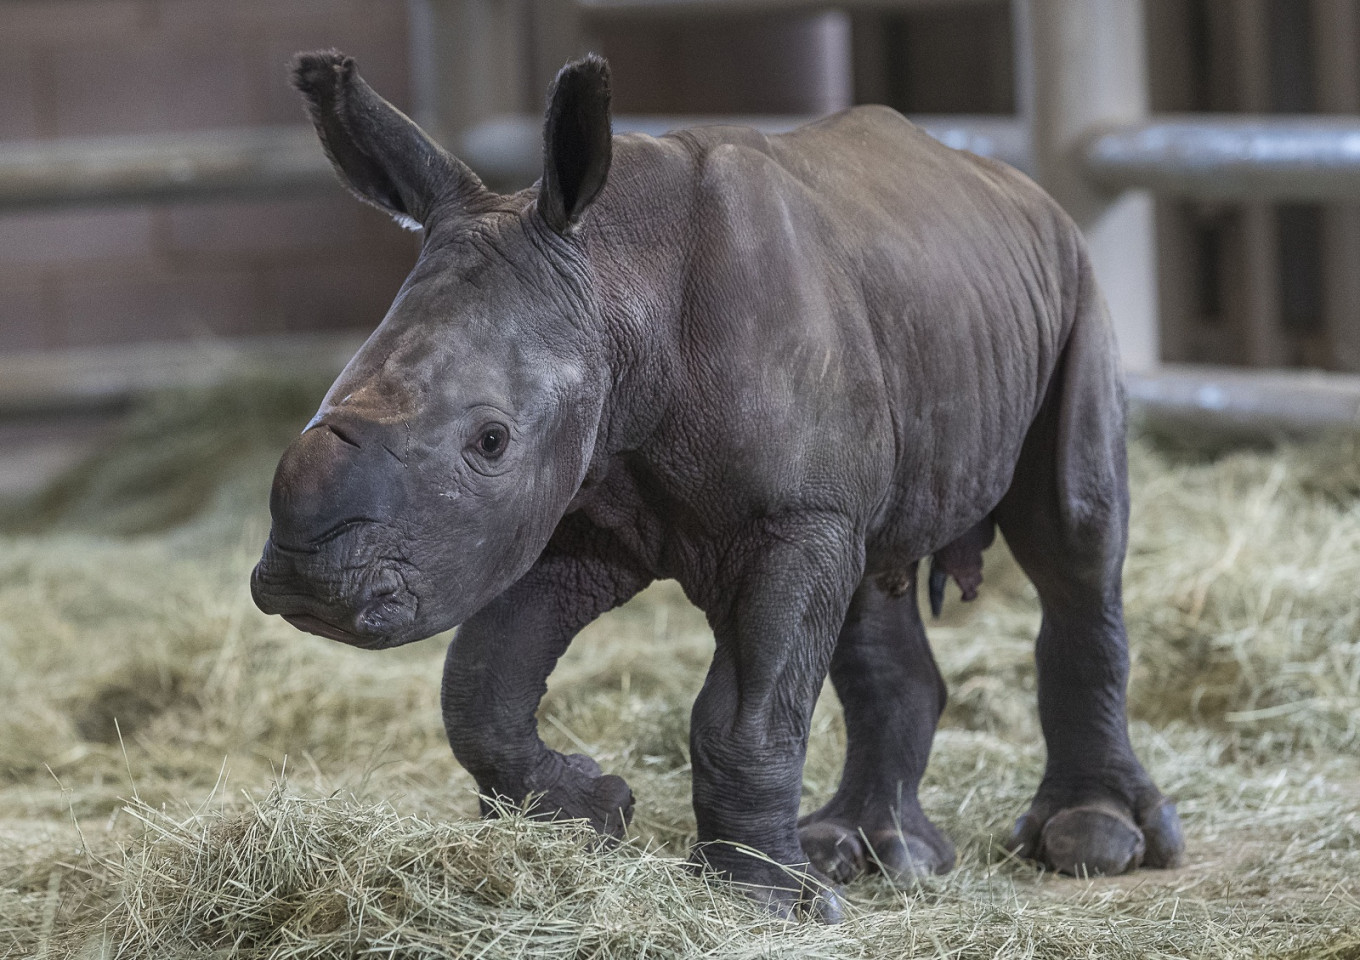 Southern white rhino born at US zoo, could help save species